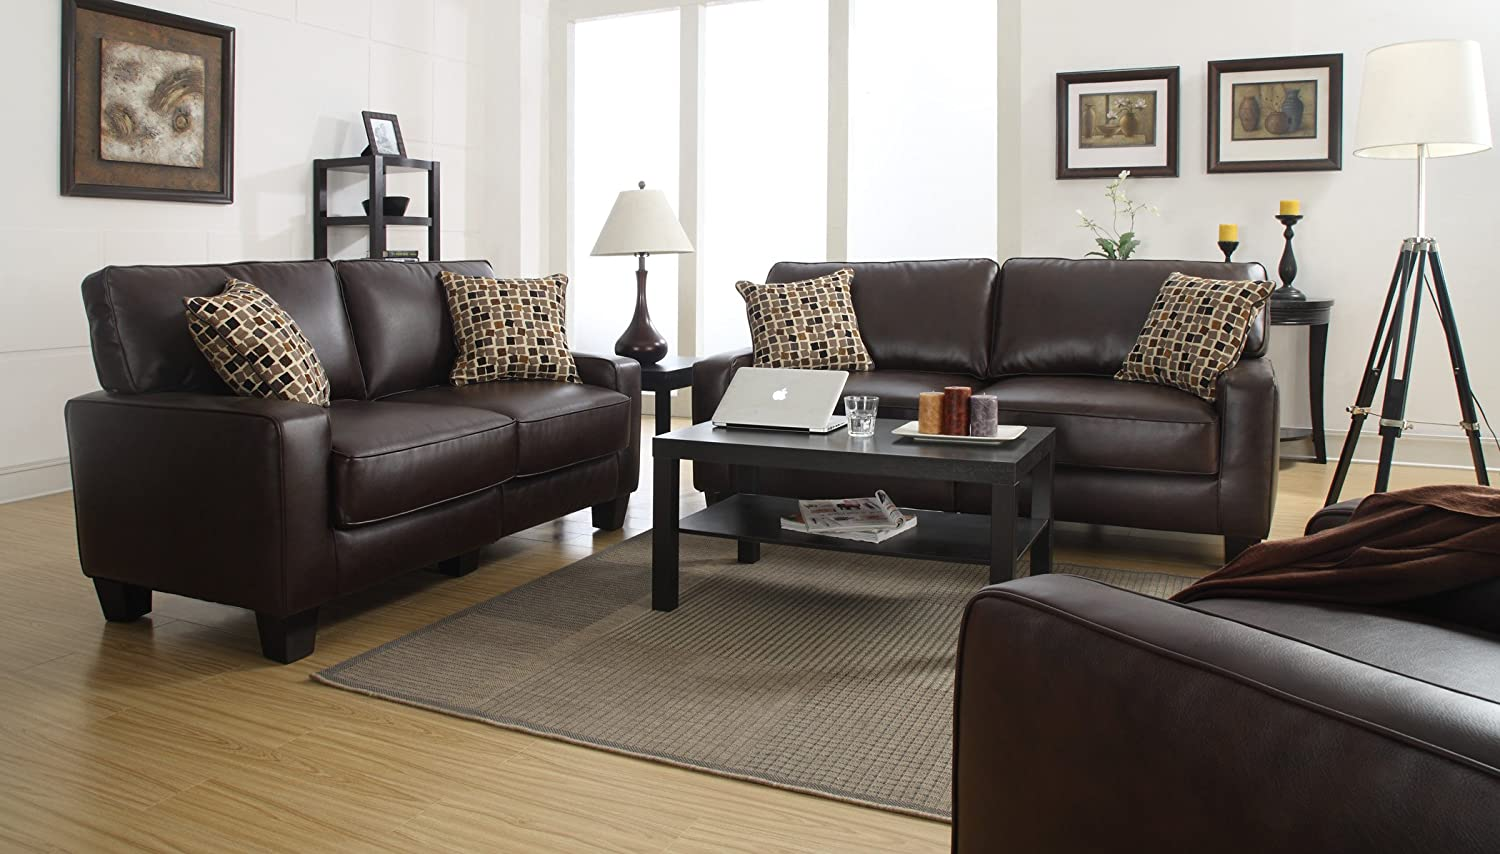 olympian collection loveseat sofa chocolate and couch products furniture upholstery my serta stationary